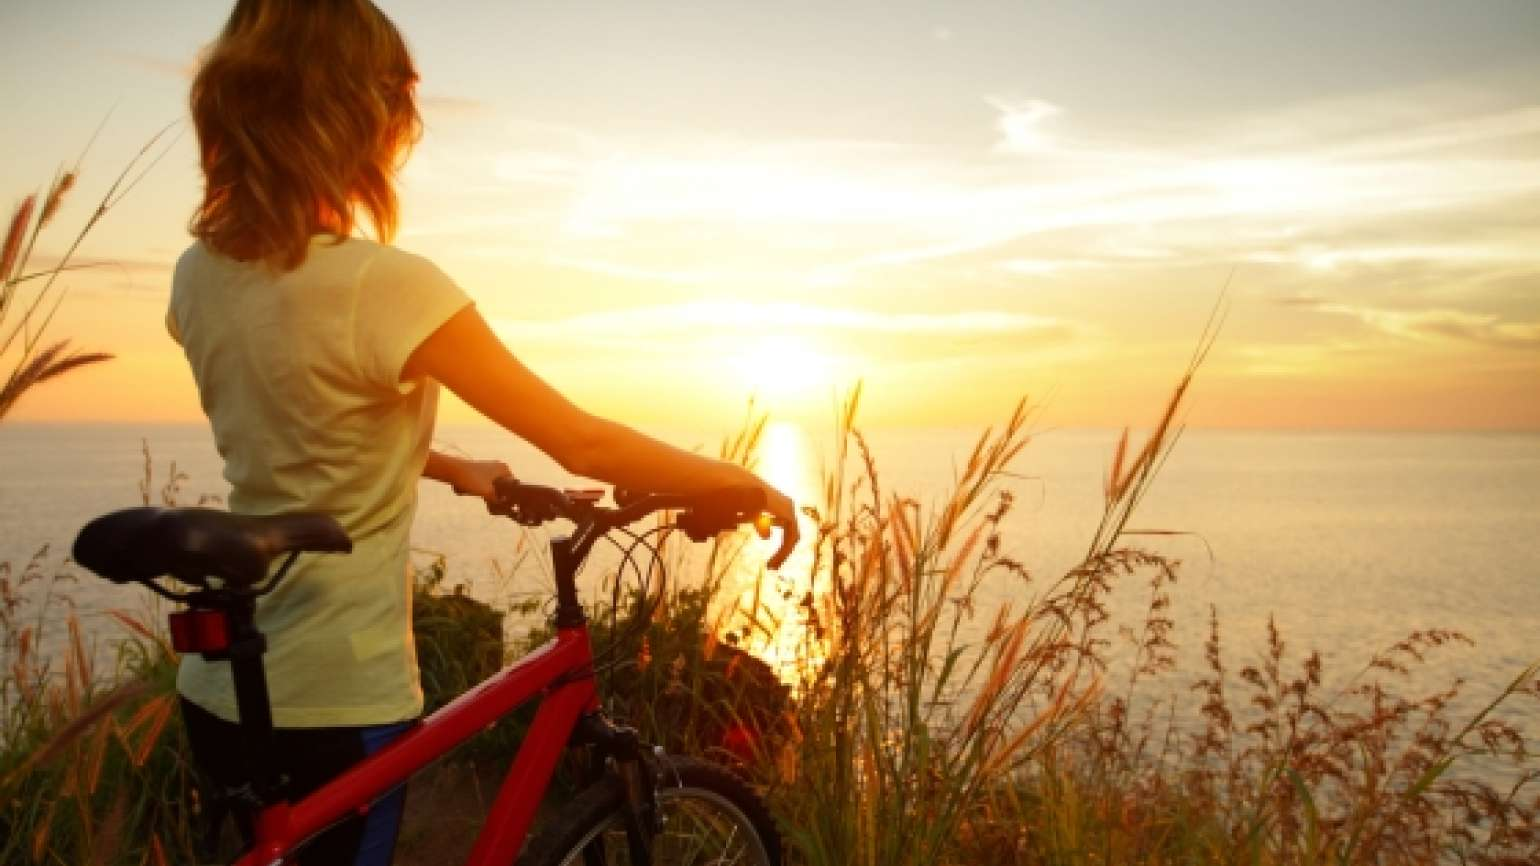 woman on bicycle thoughtfully taking in the sunrise